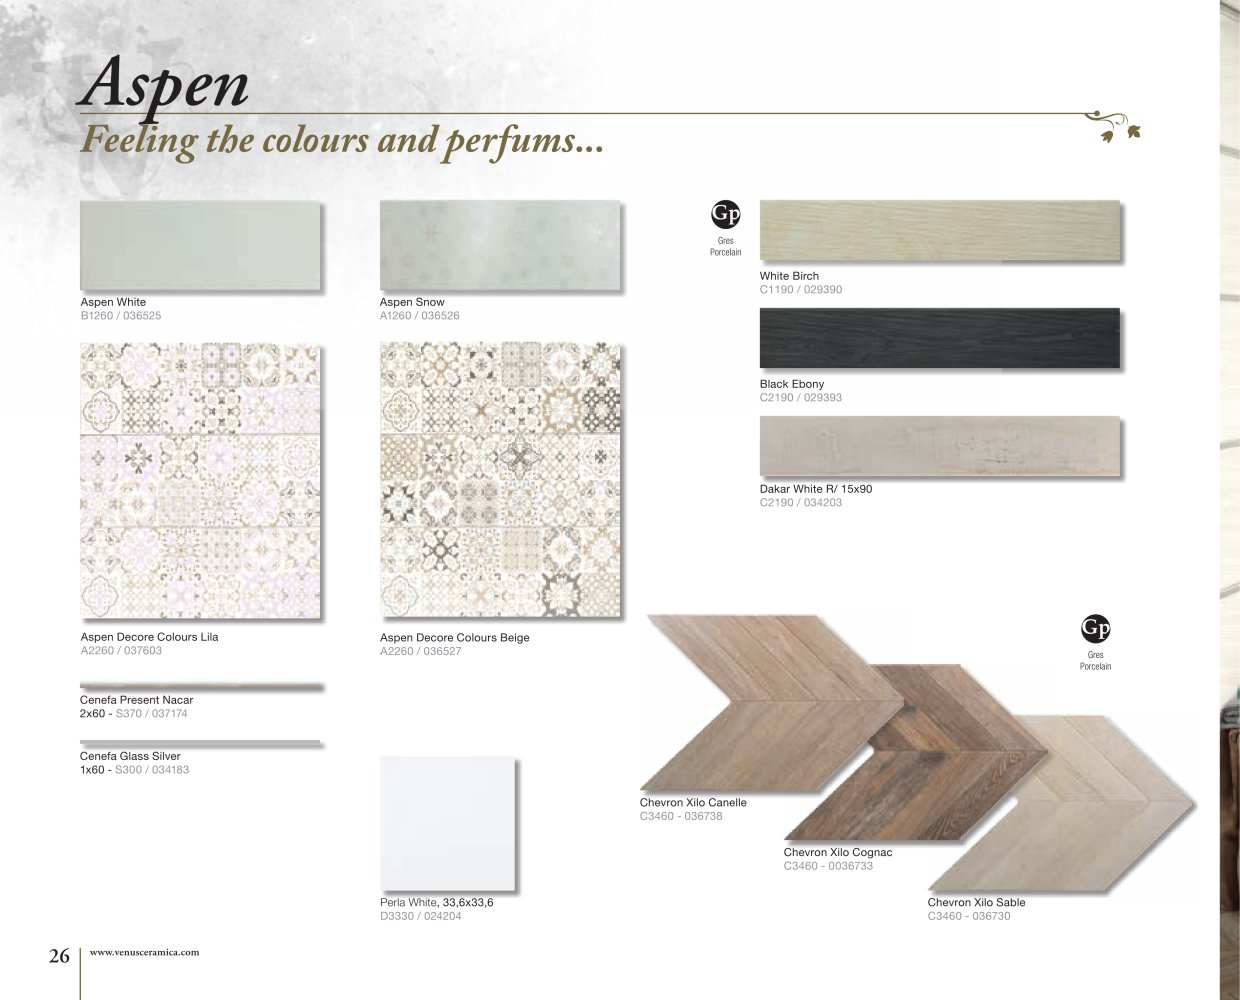 Aspen venus ceramica pdf catalogues documentation brochures aspen 1 2 pages dailygadgetfo Image collections